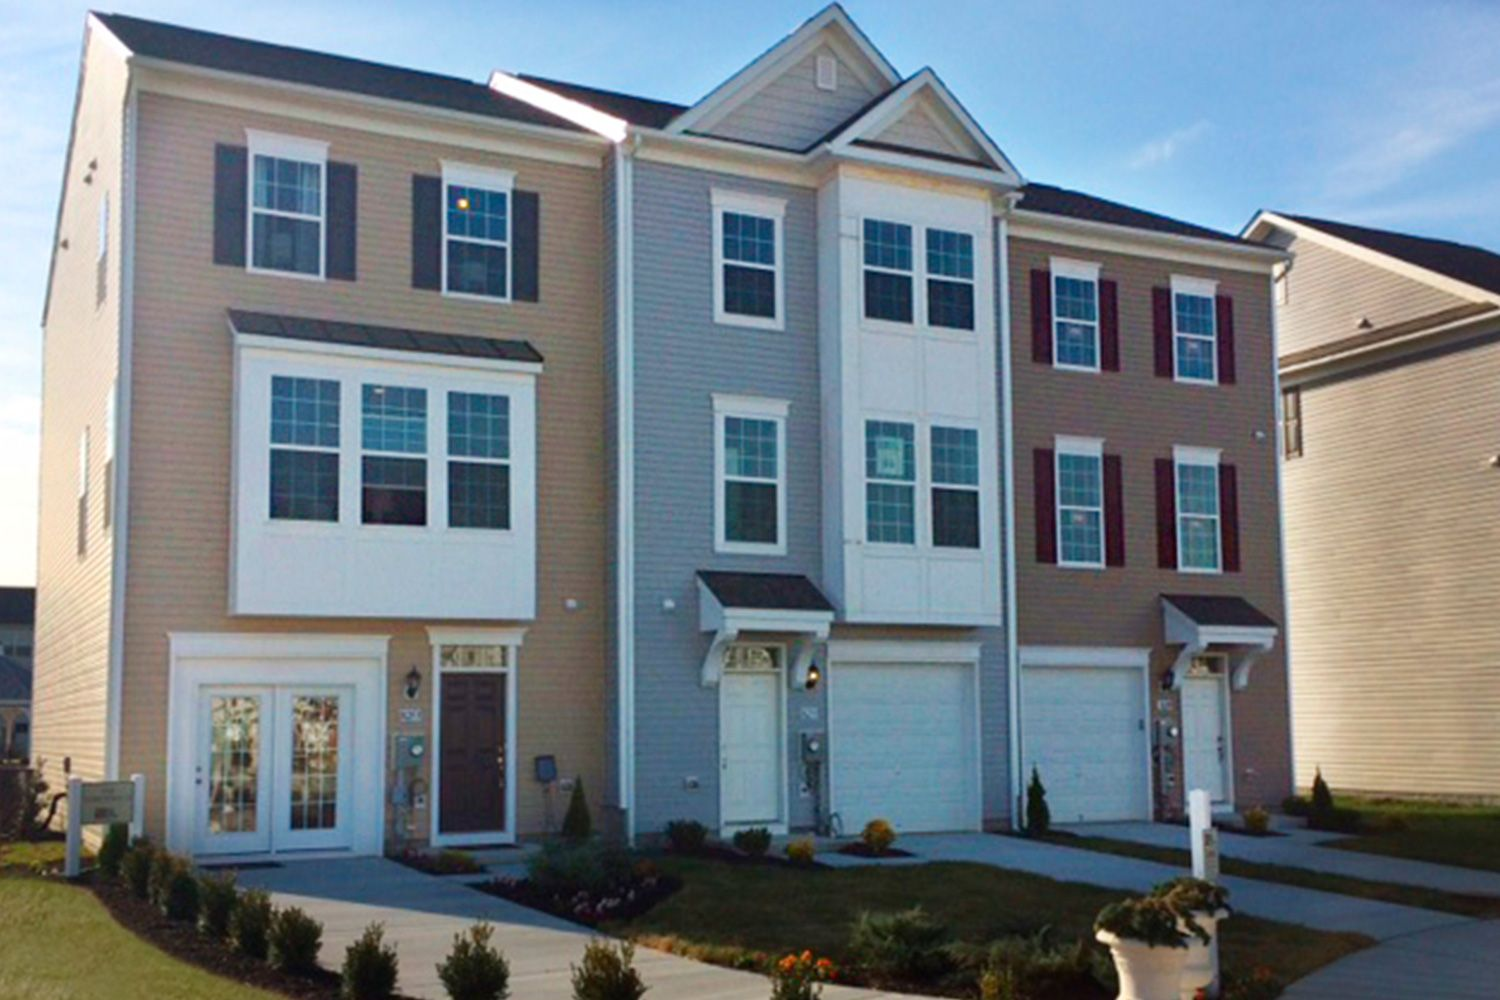 Kensington terrace new homes in martinsburg wv by dan ryan for Home builders in wv